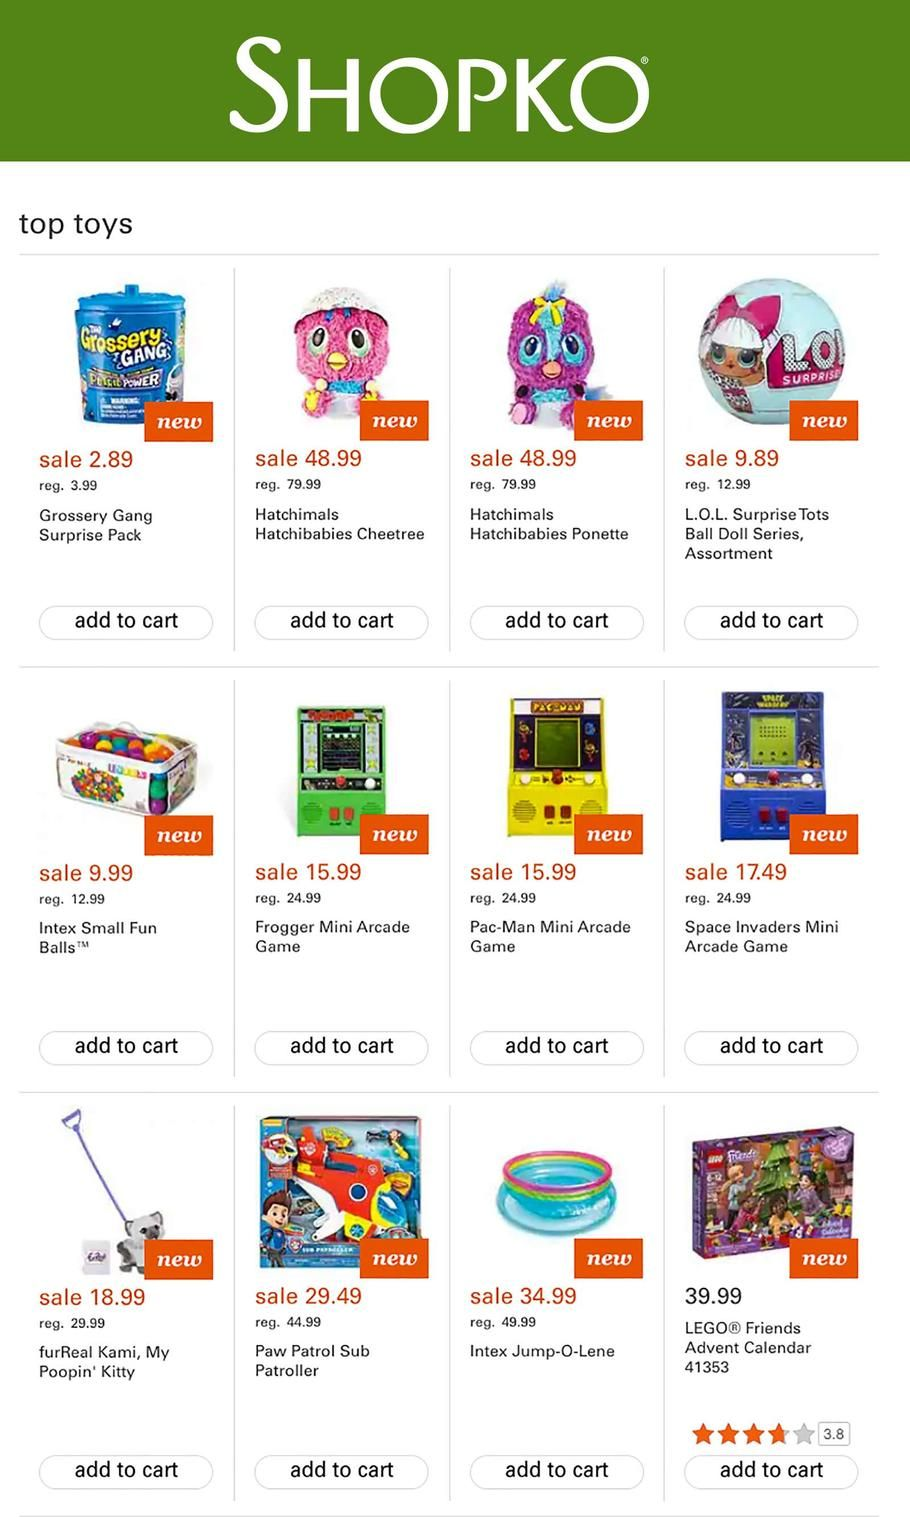 image relating to Shopko Printable Coupons referred to as Shopko Ultimate Toys 2018 Adverts and Bargains Study the Shopko Greatest